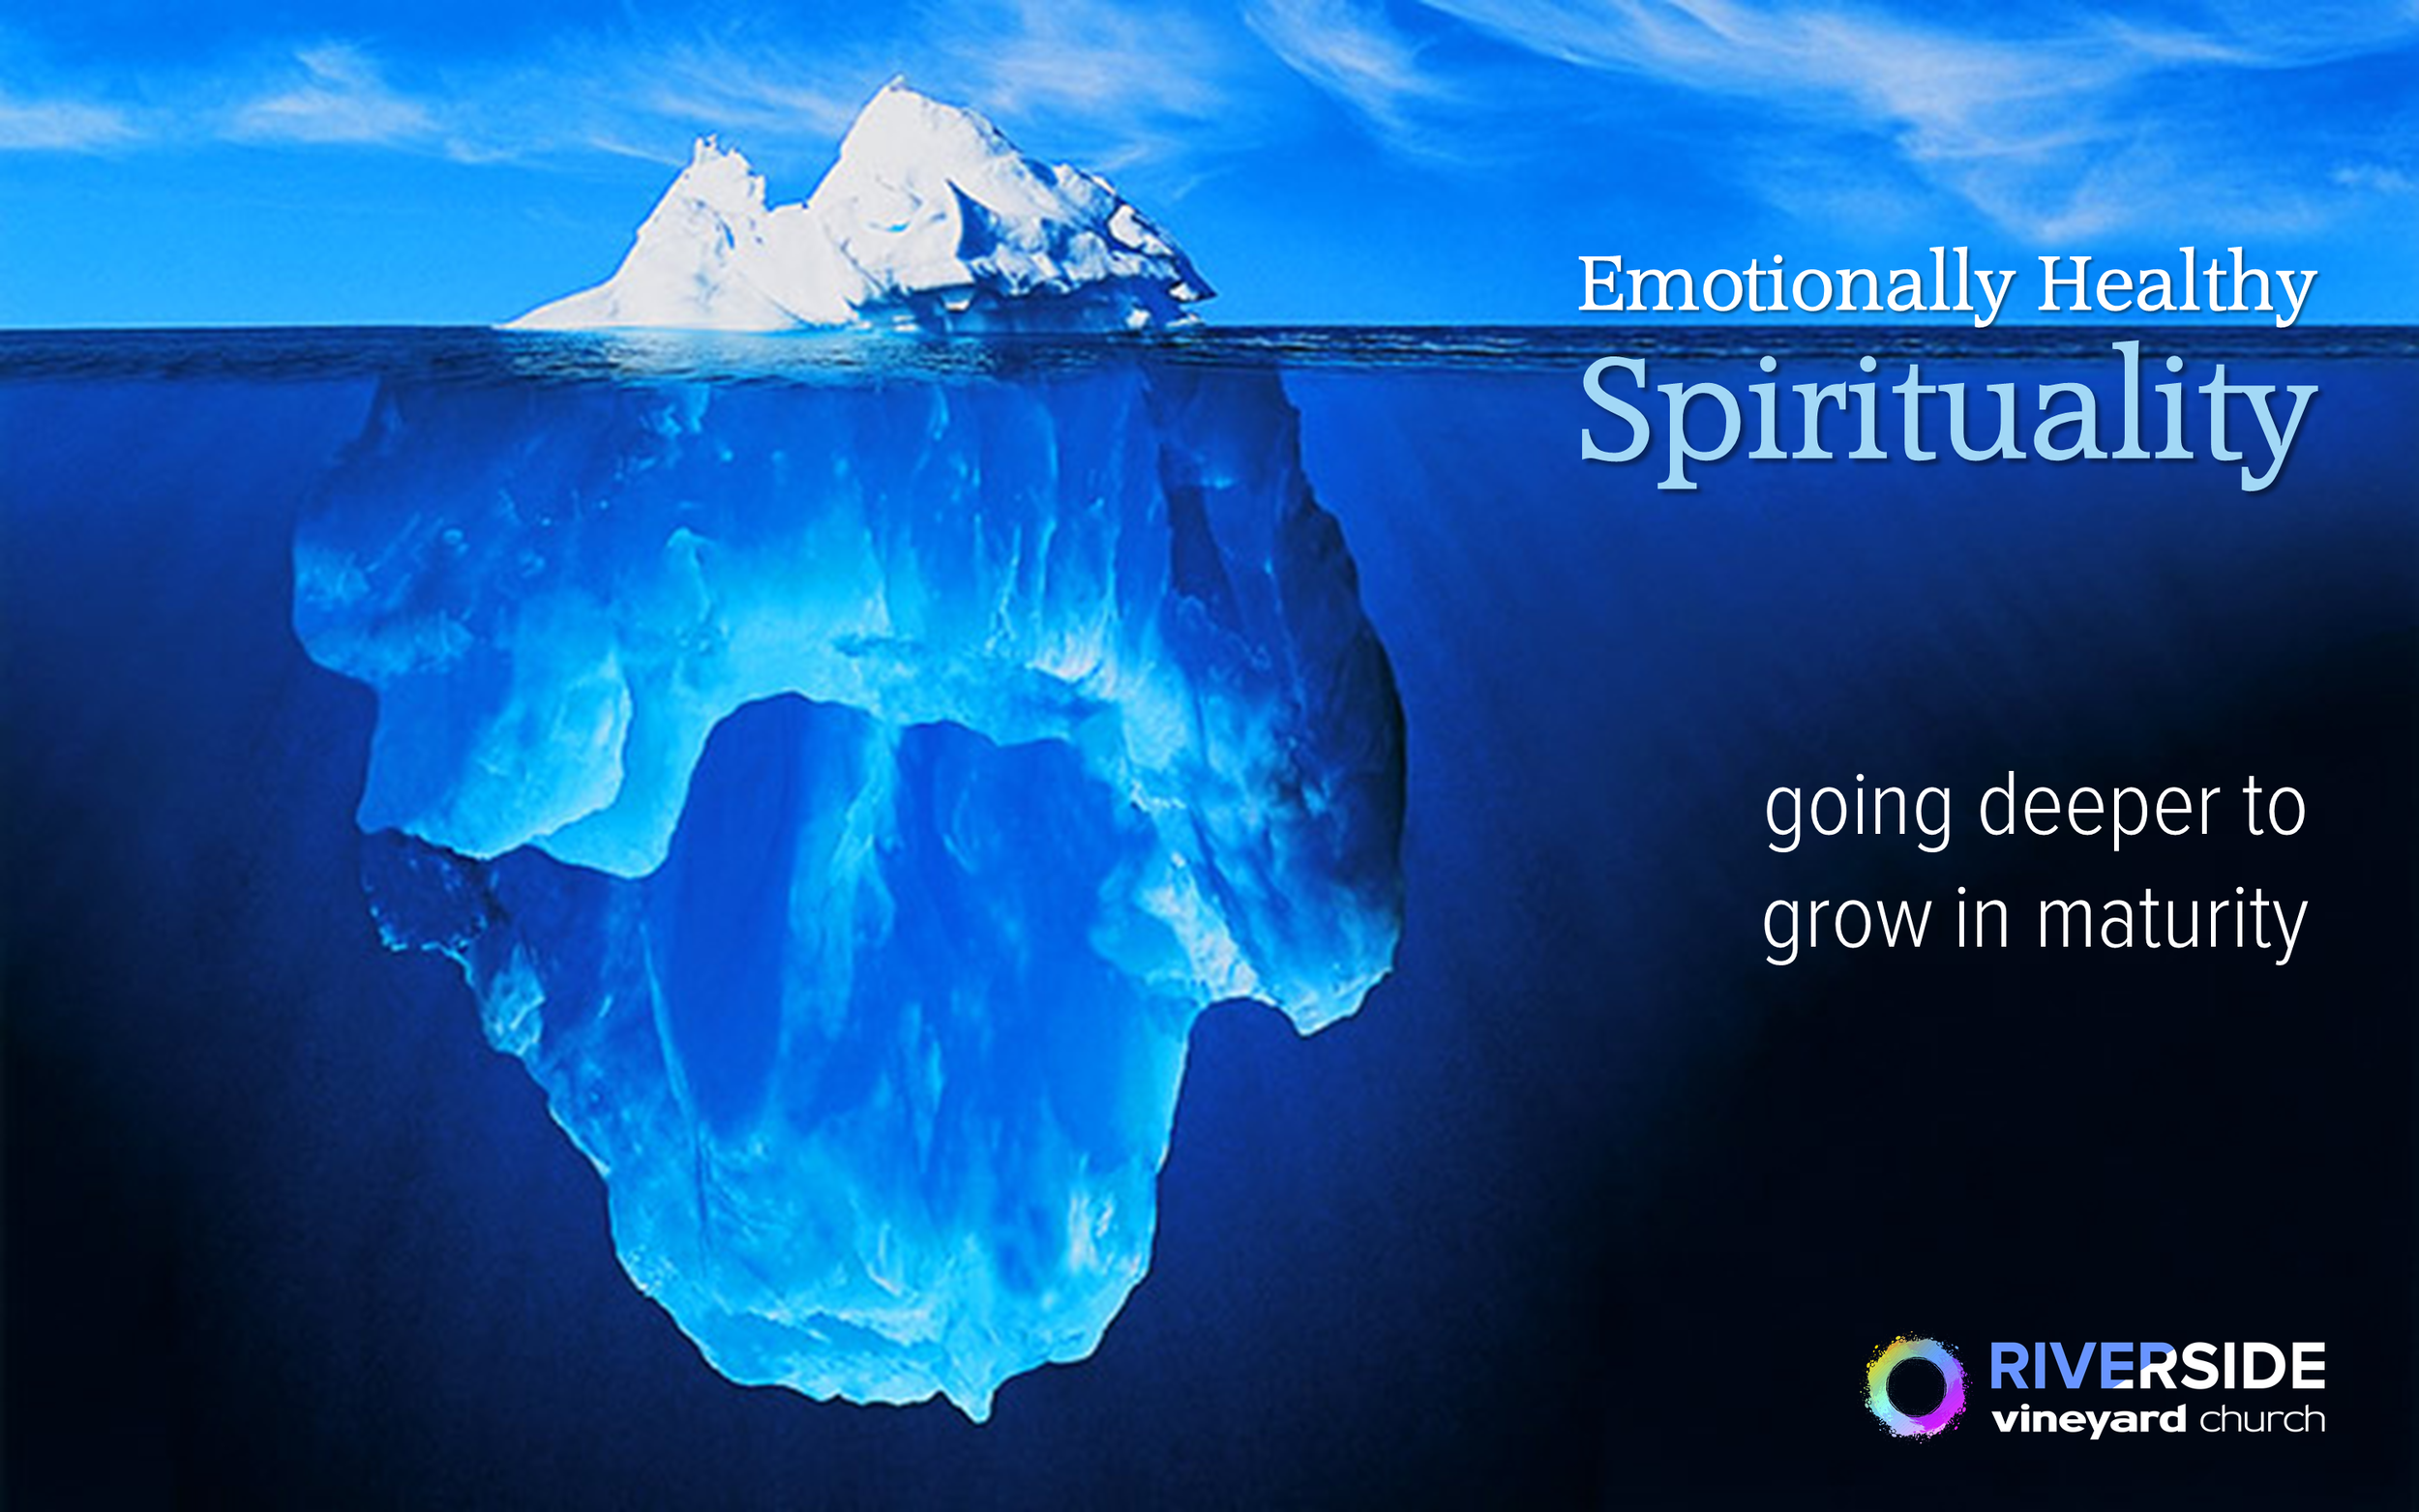 Emotionally Healthy Spirituality, rect.png